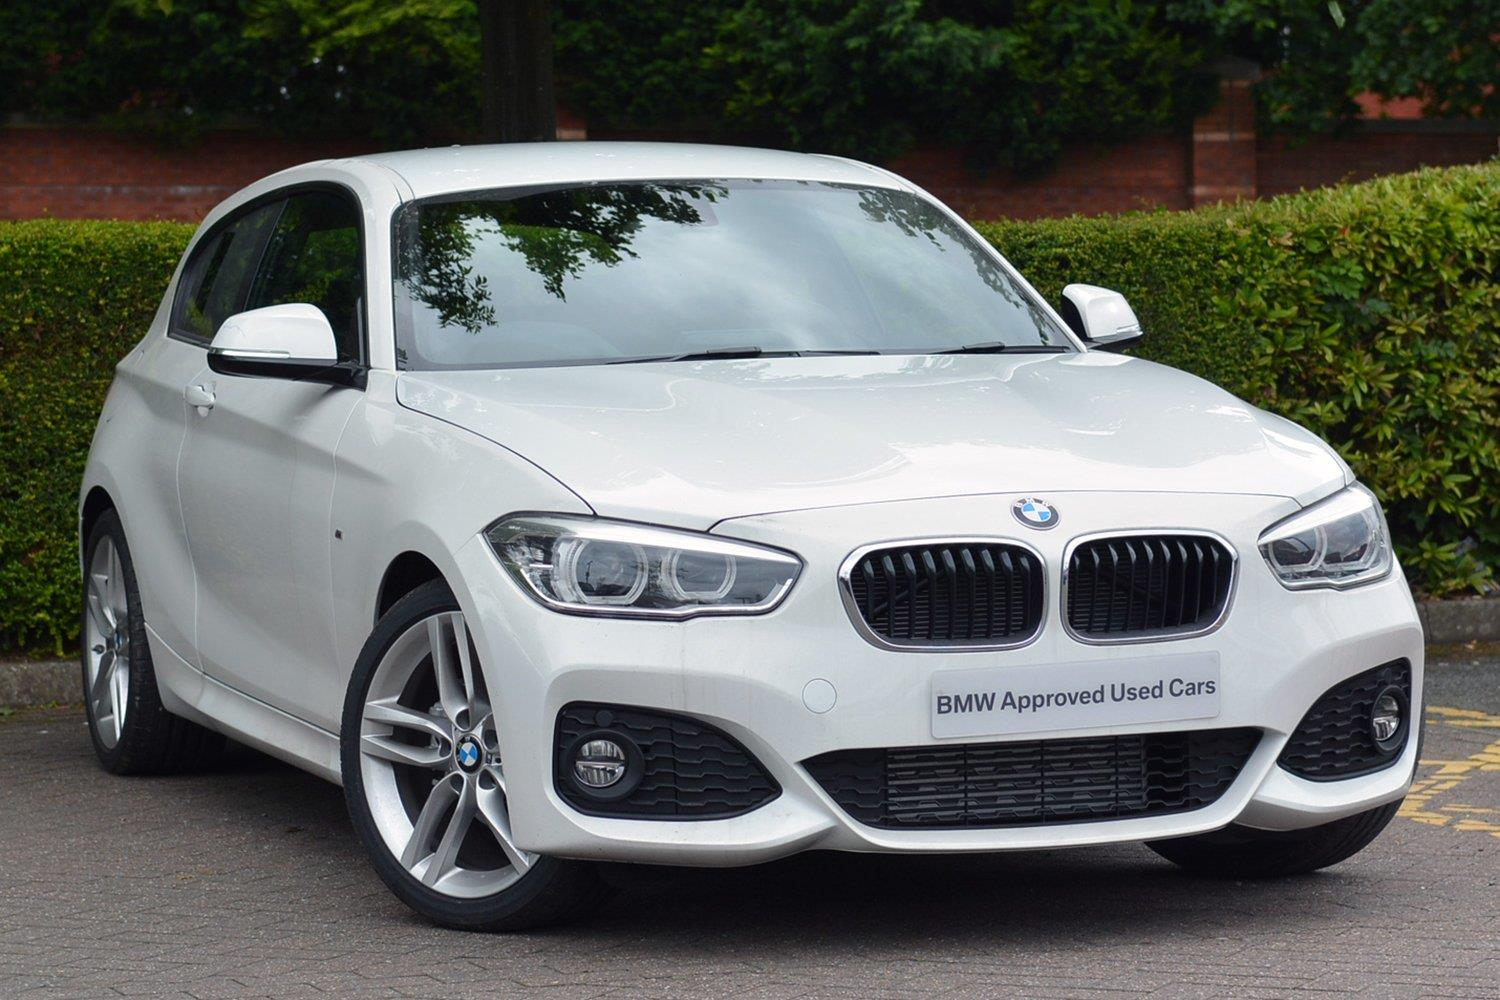 BMW 1 Series 3-door Sports Hatch MM17DZT - Image 7